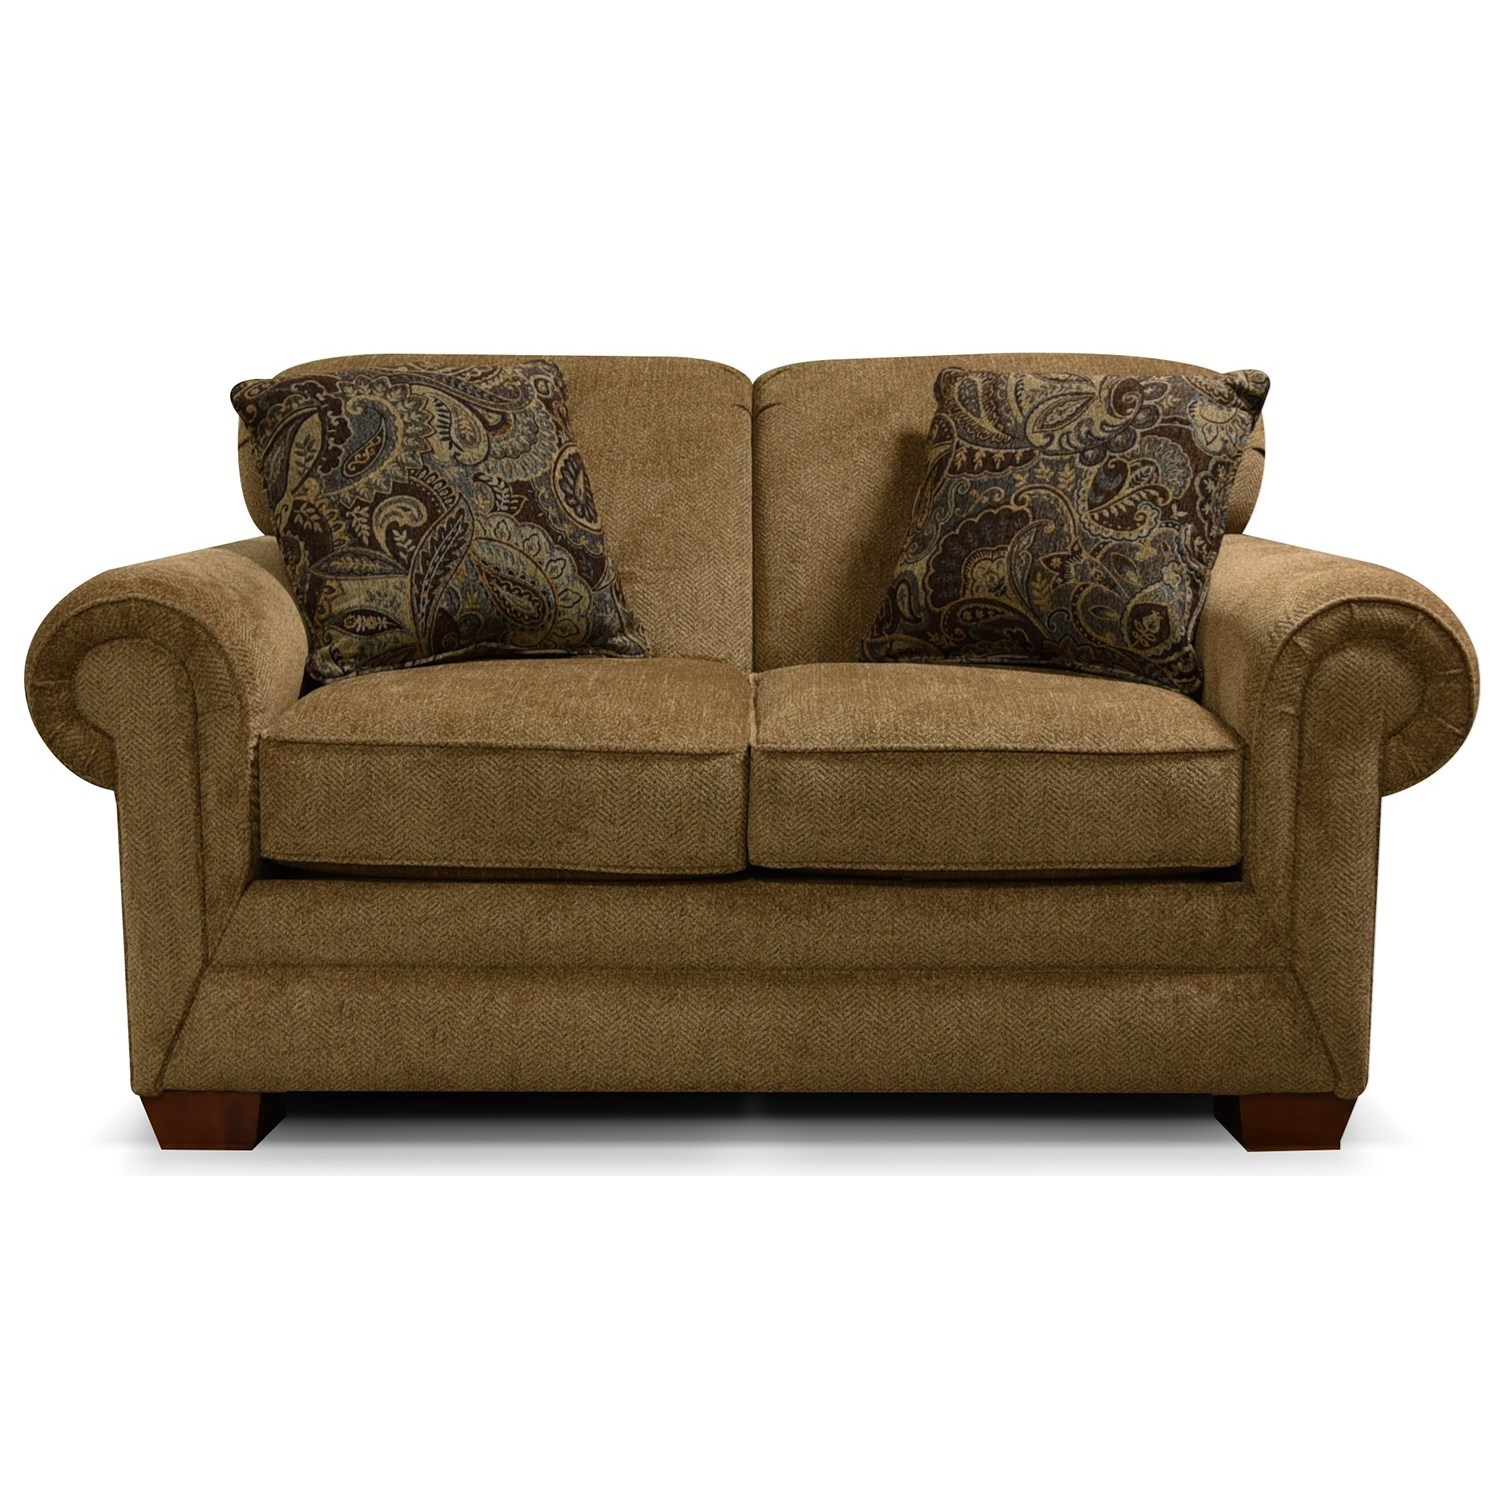 Monroe Loveseat by England at SuperStore